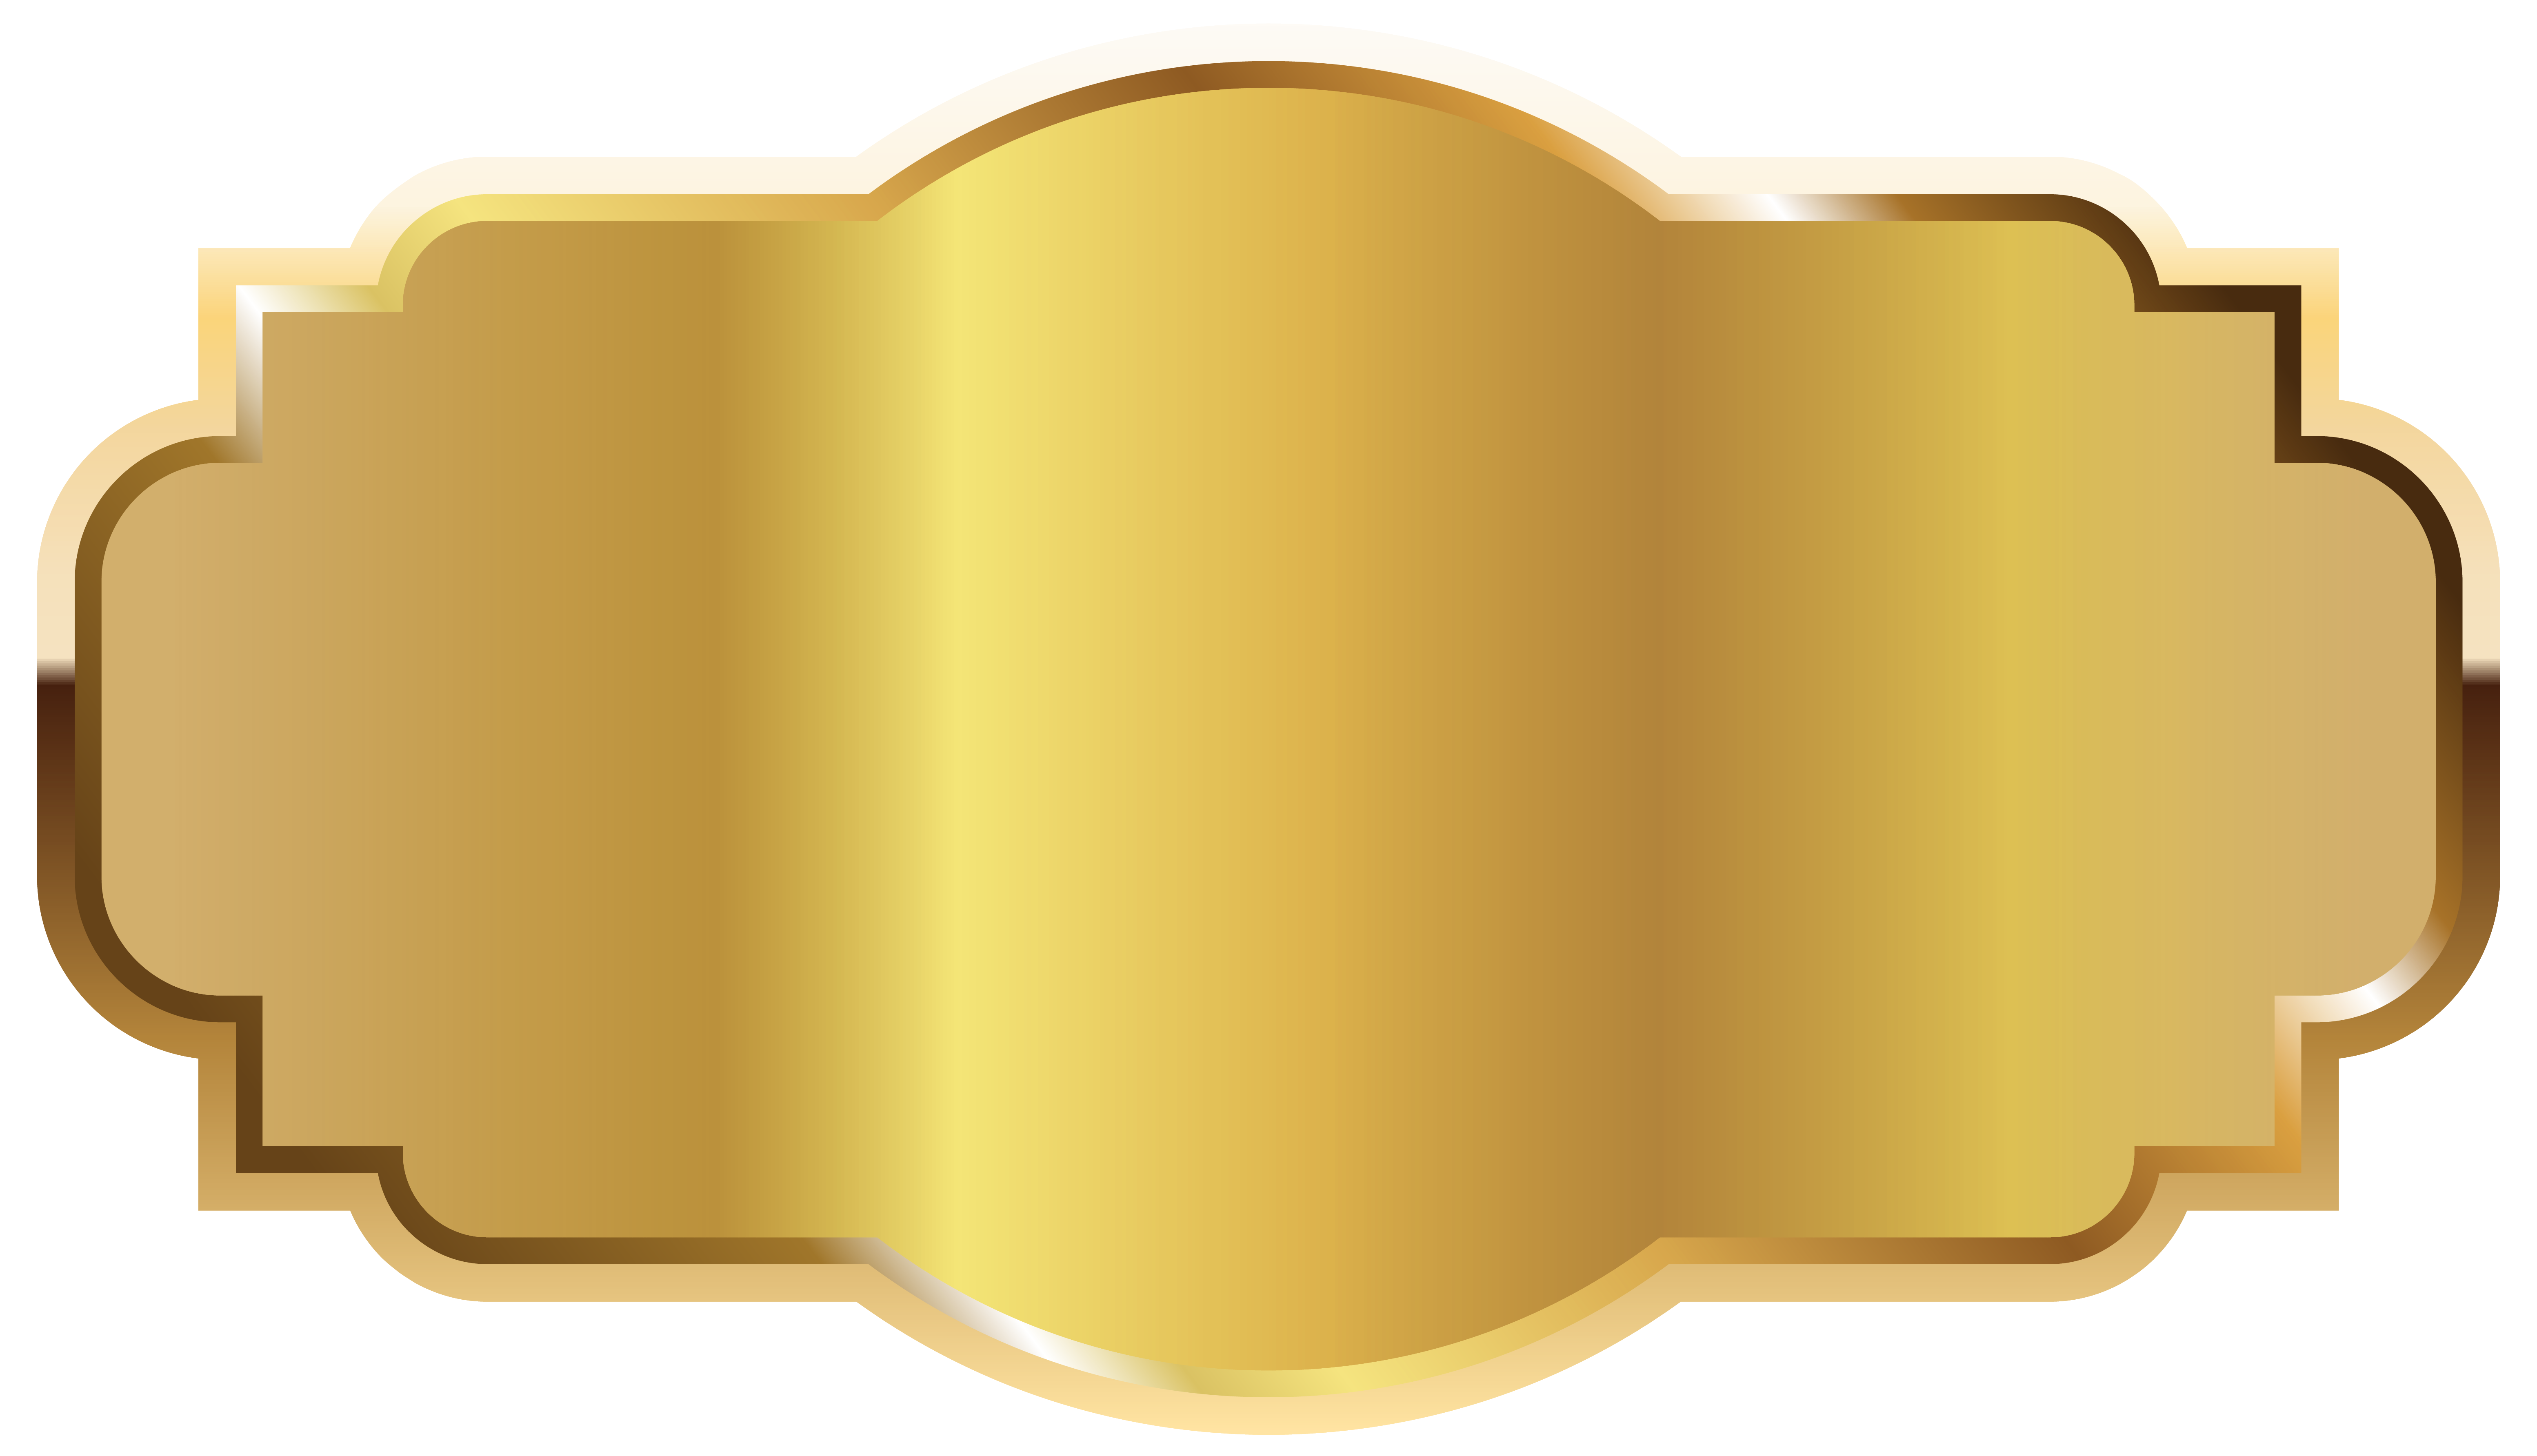 Gold Label Template Clipart PNG Image.